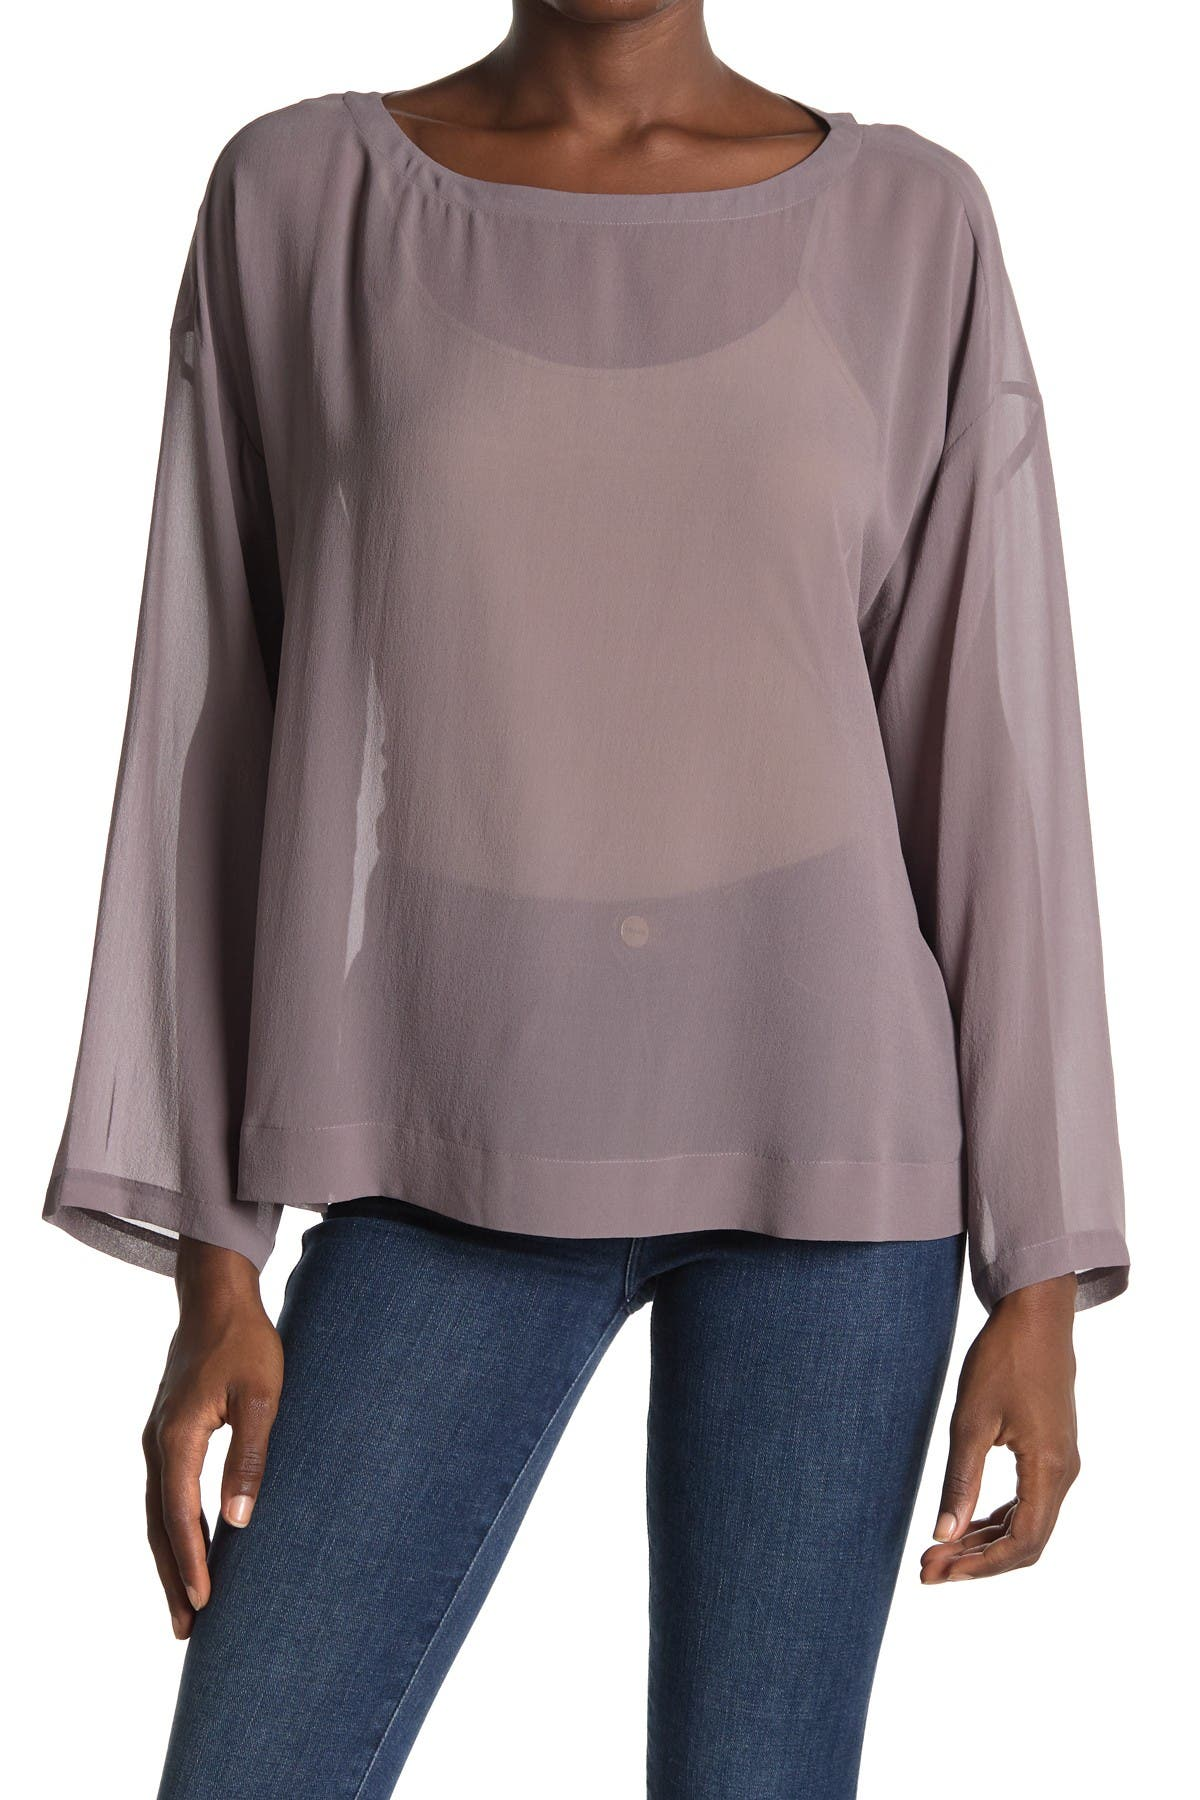 Image of Eileen Fisher Silk Boatneck Boxy Top